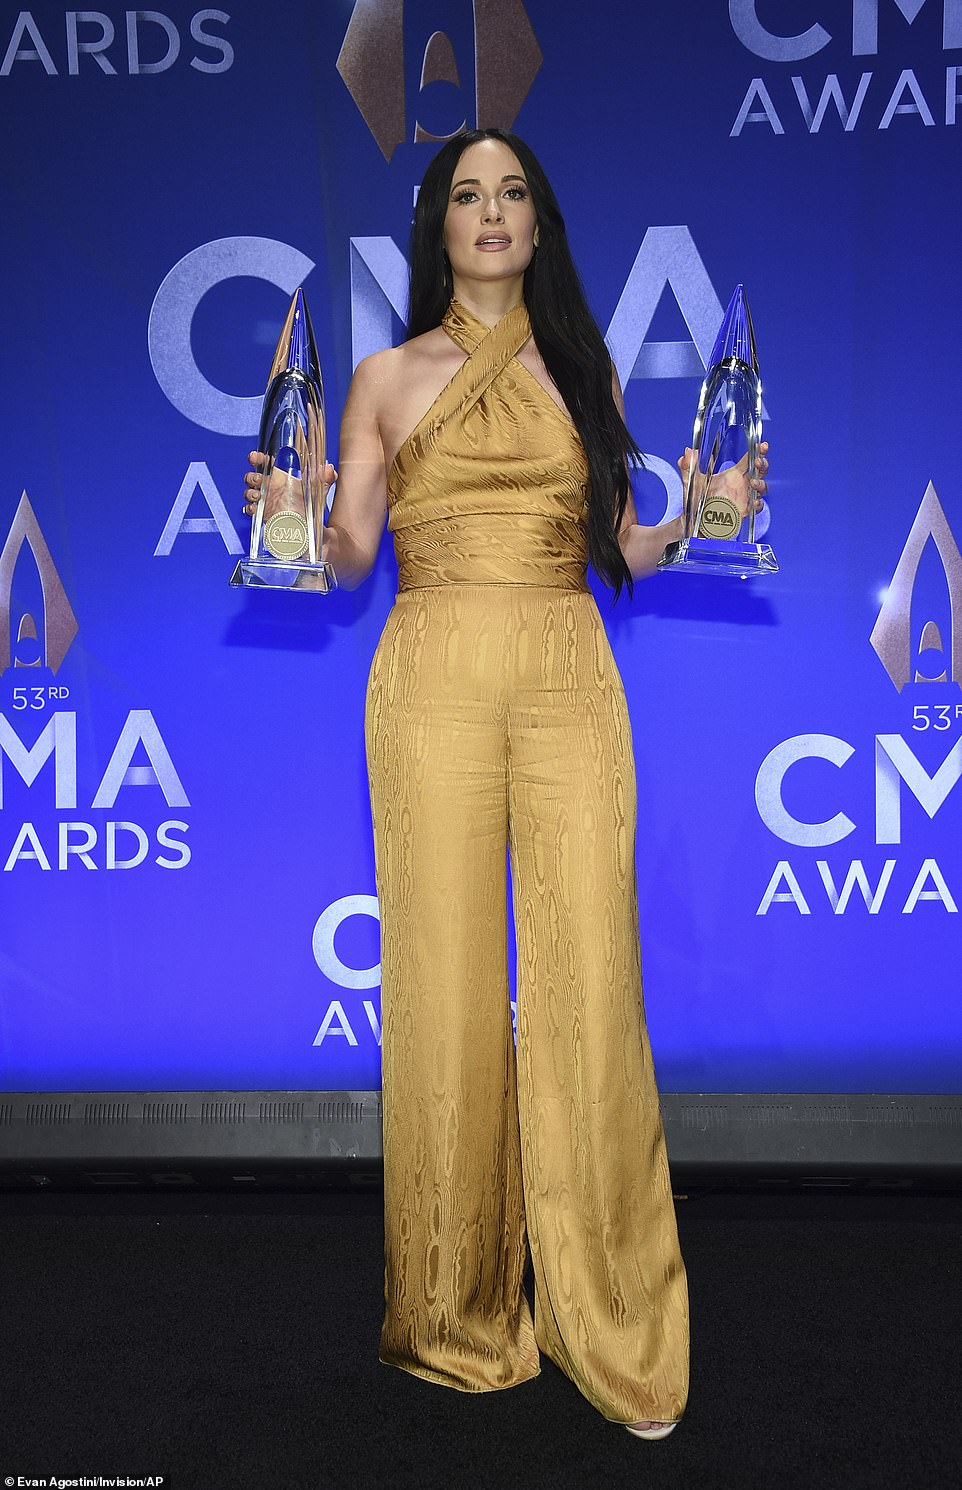 Dual winner: Kacey Musgraves holds up her two CMAs in the press room, one for Female Artist of the Year and one for Music Video of the Year for Rainbow